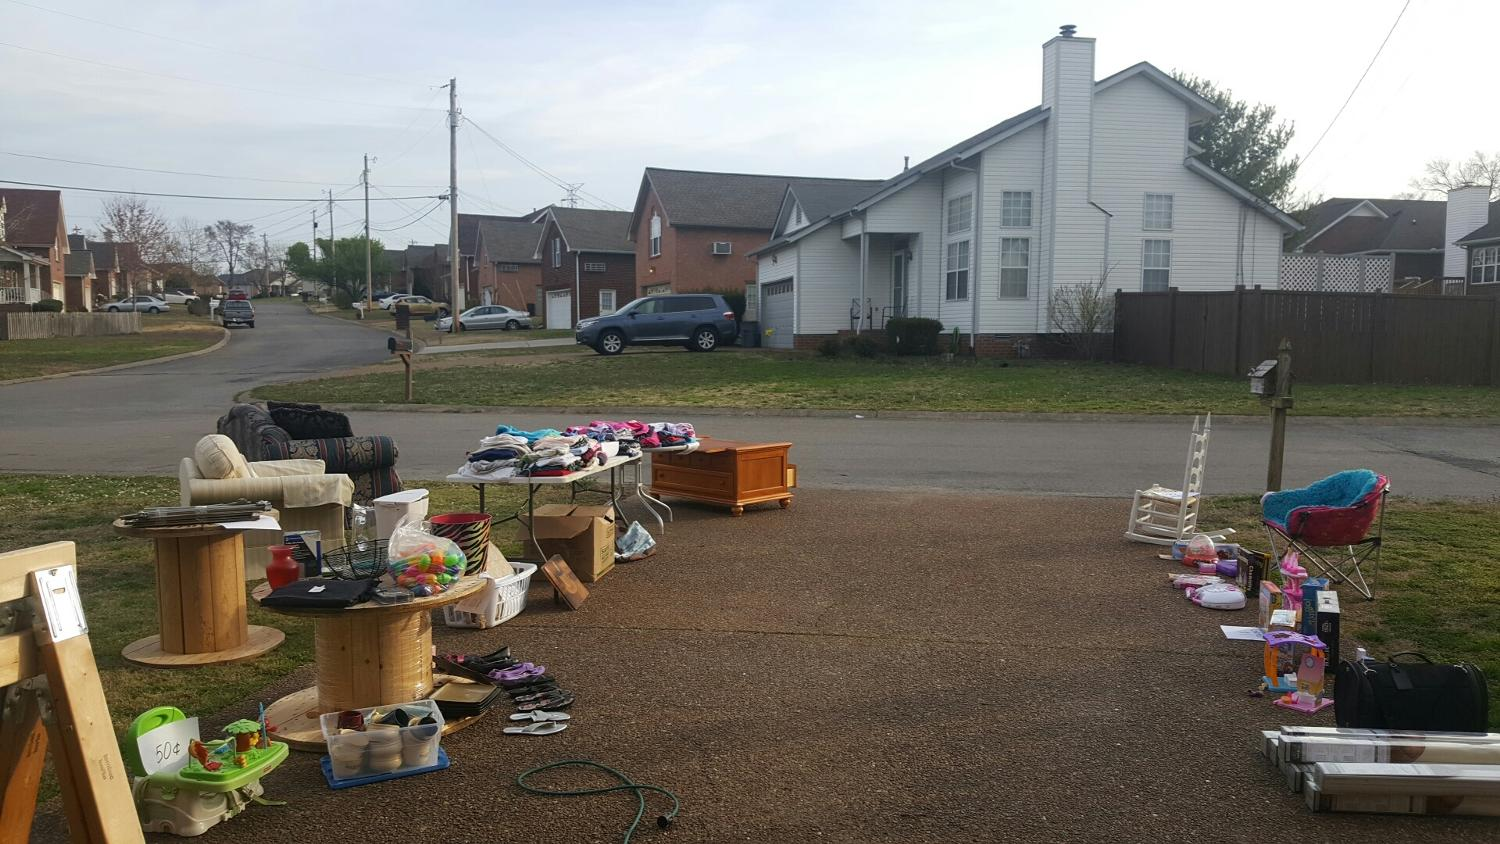 Everything must go yard sale in nashville tennessee for - Nearest garage to my current location ...